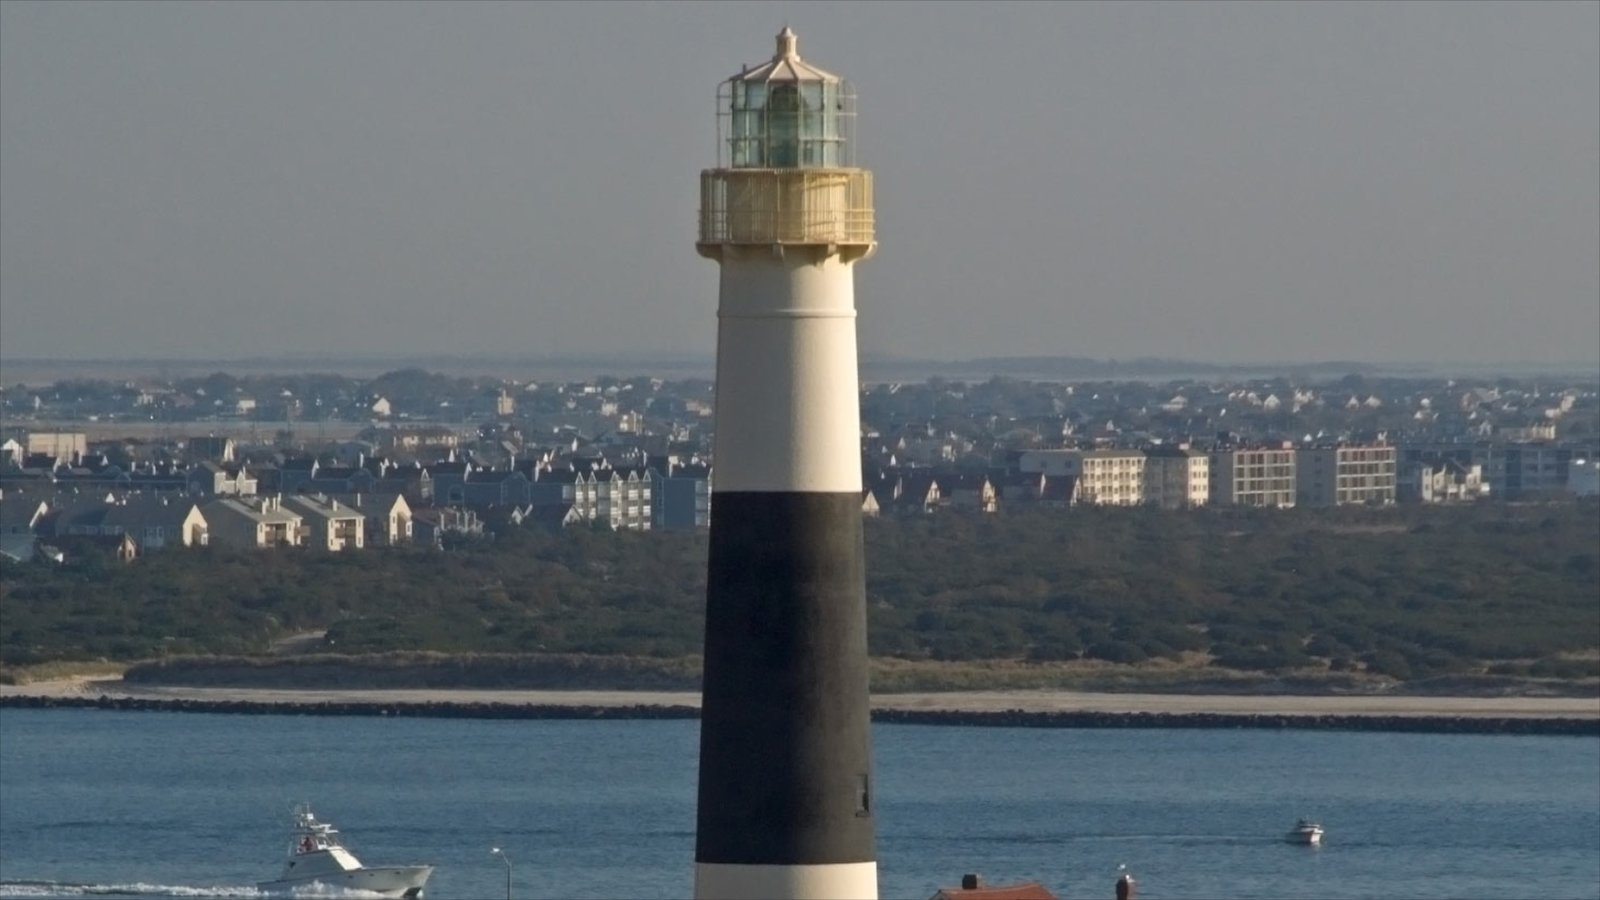 Absecon Lighthouse which includes a lighthouse and general coastal views